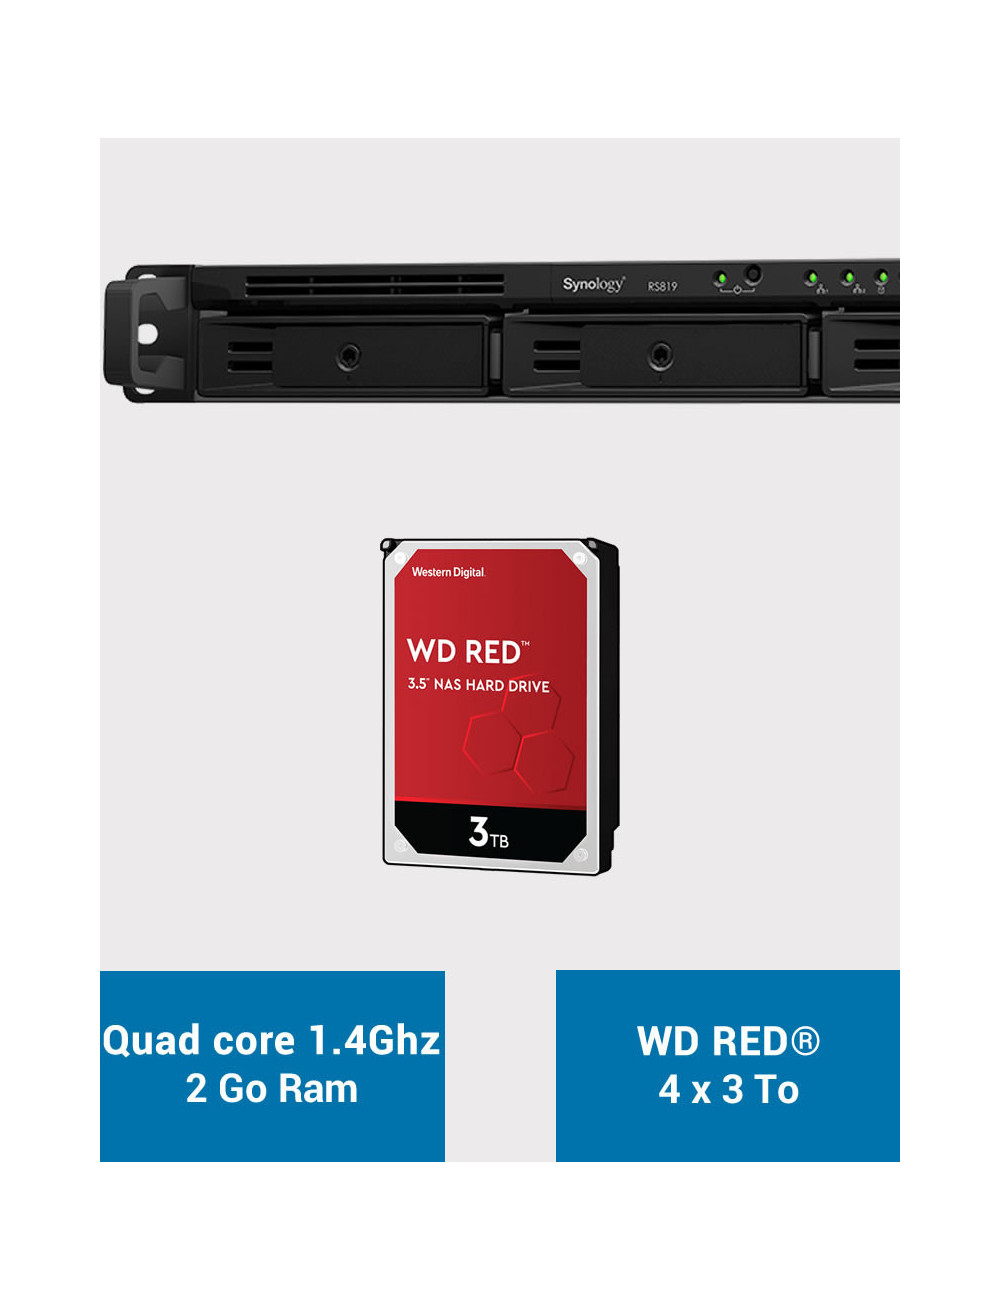 Synology RS819 NAS Server WD RED 12TB (4x3TB)